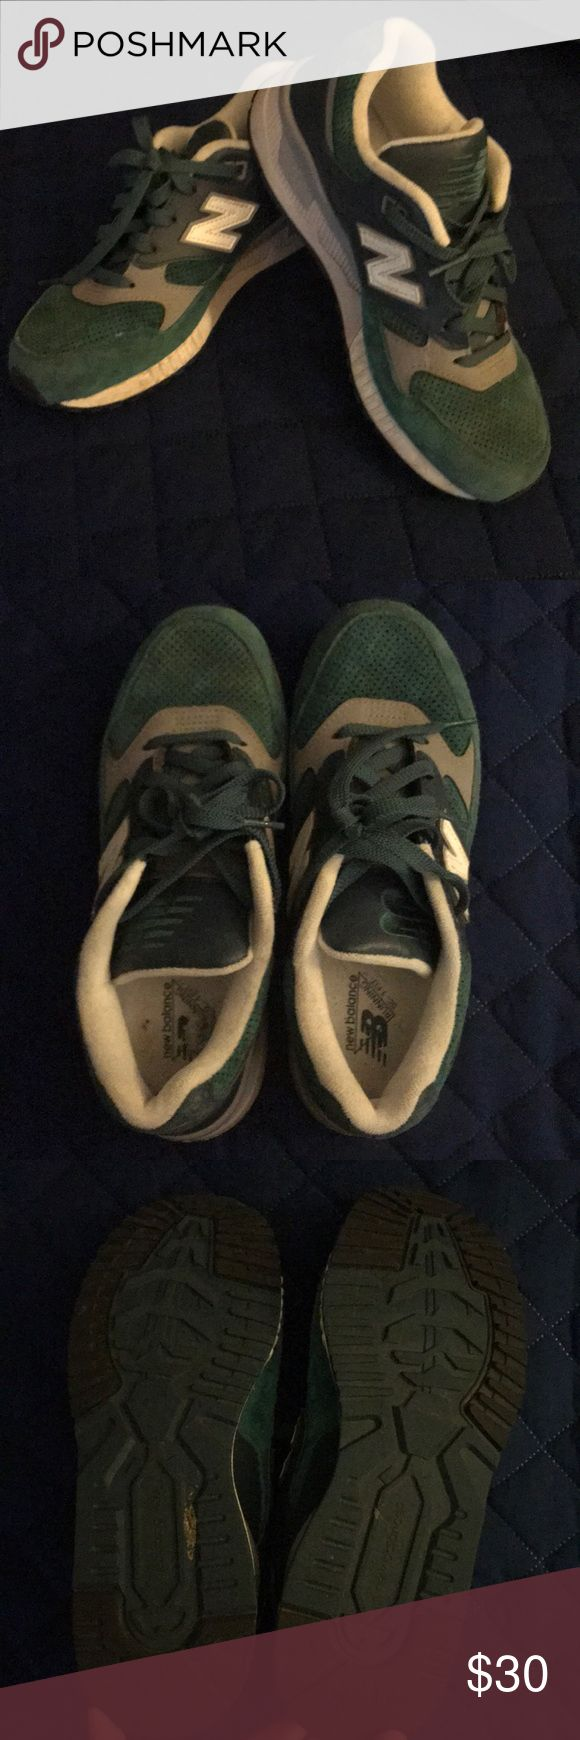 New Balance 530 suede running shoes Great condition ladies New Balance 530 shoes in teal green, navy and gray. Suede. Size 7.5. Worn just a few times. New Balance Shoes Athletic Shoes